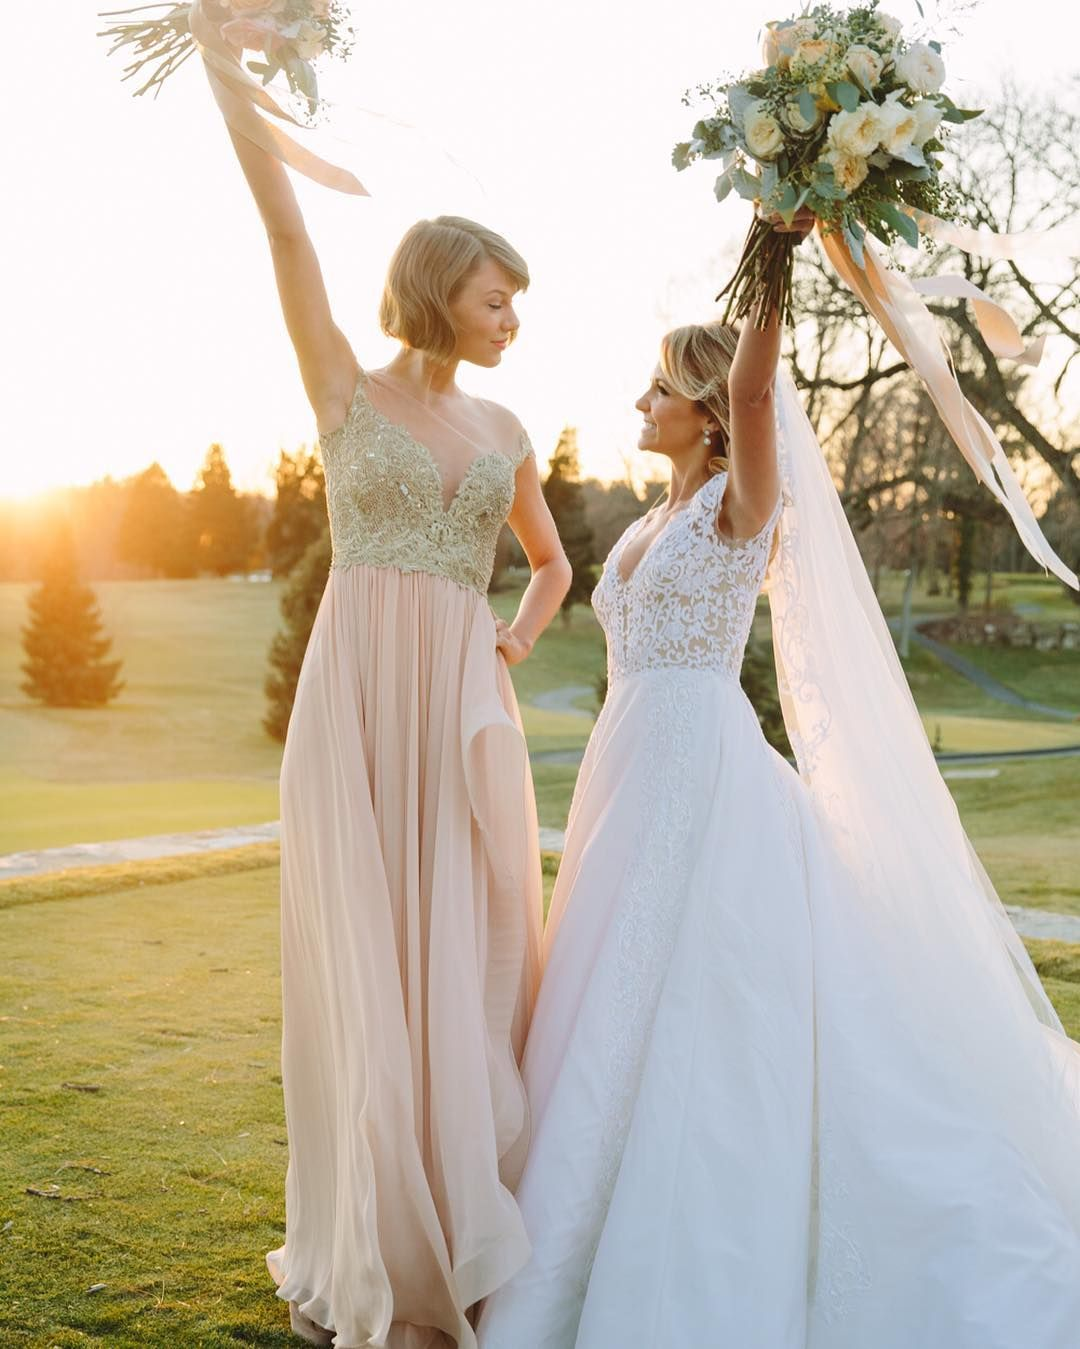 Best wedding dresses for the maids  Taylor and Brittany  Taylor Swift  Pinterest  Instagram Wedding